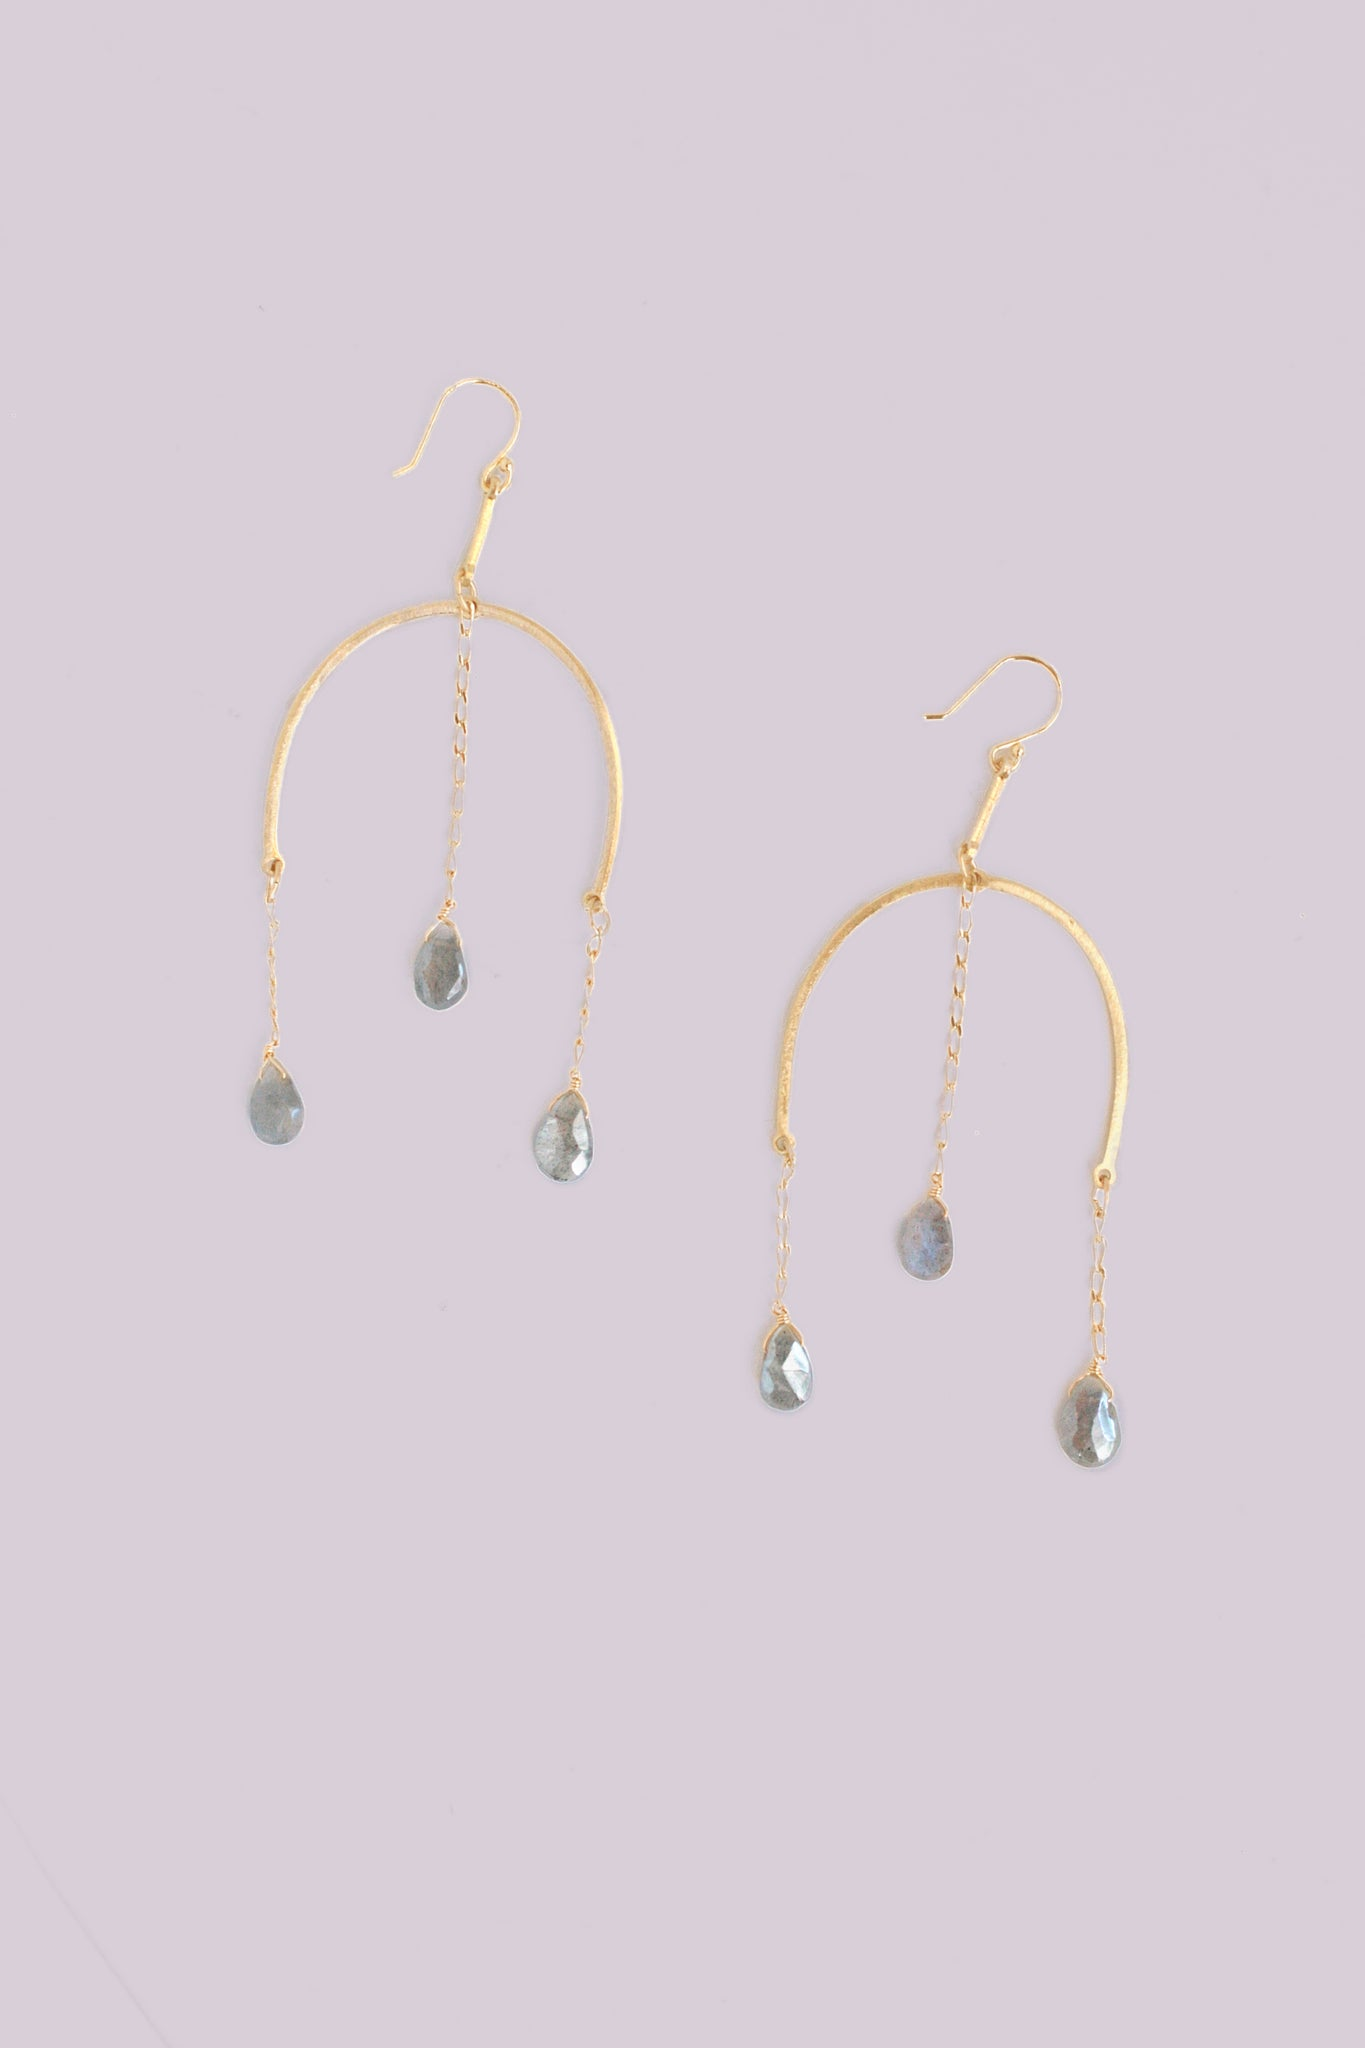 Triple dangle statement earrings - Labradorite